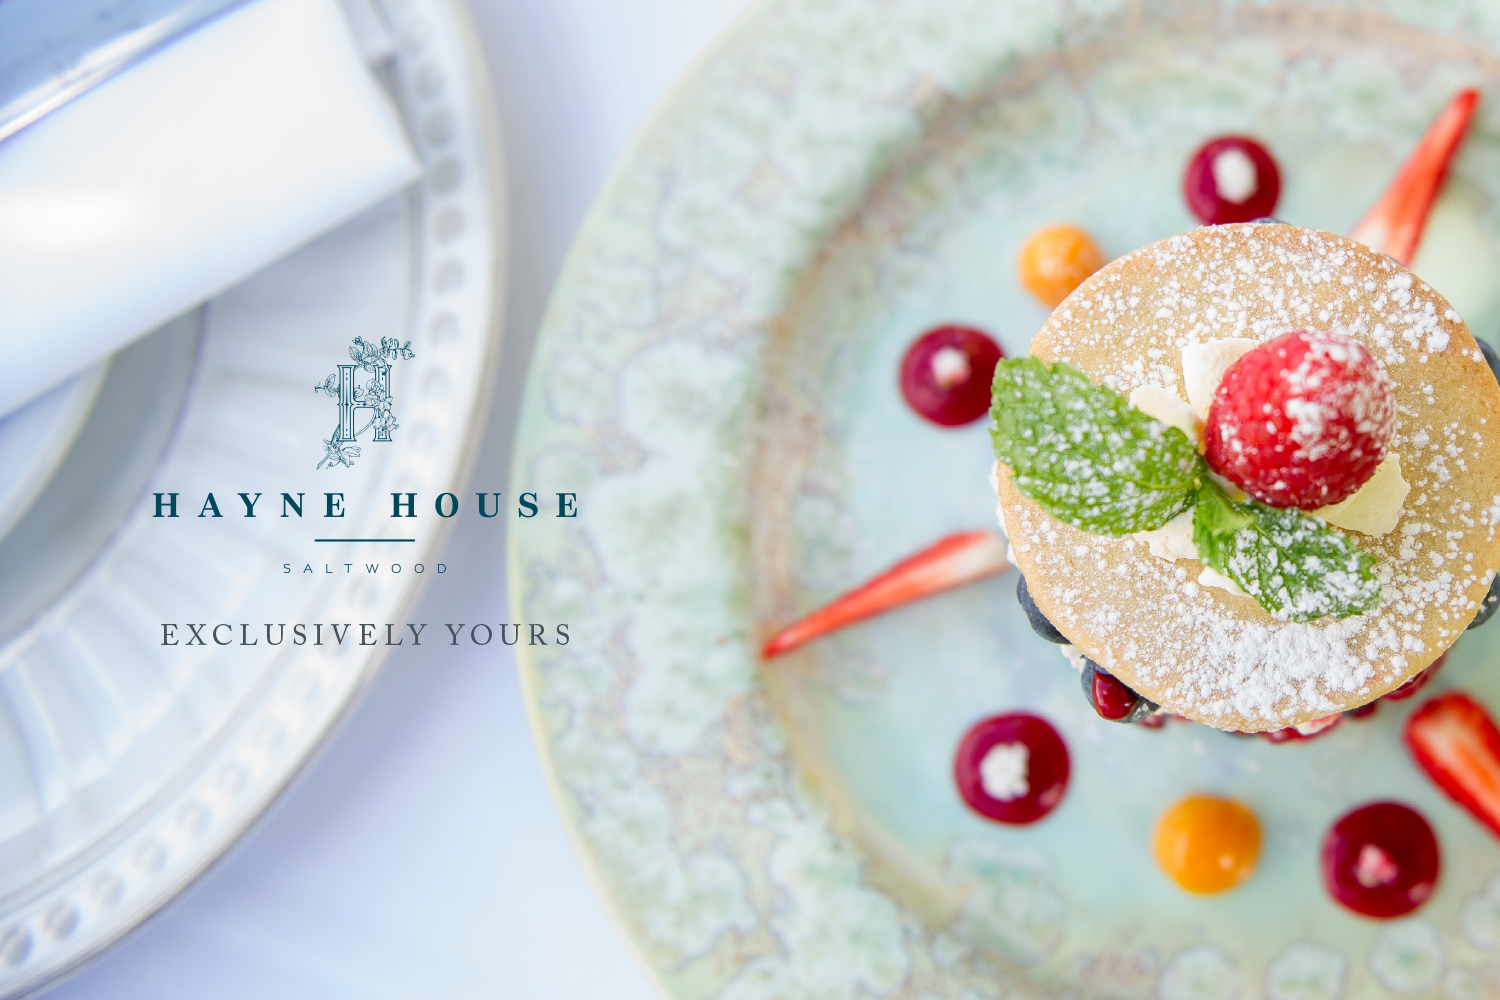 Hayne House wedding venue branding by Ditto Creative, branding agency and brand stylists in Kent